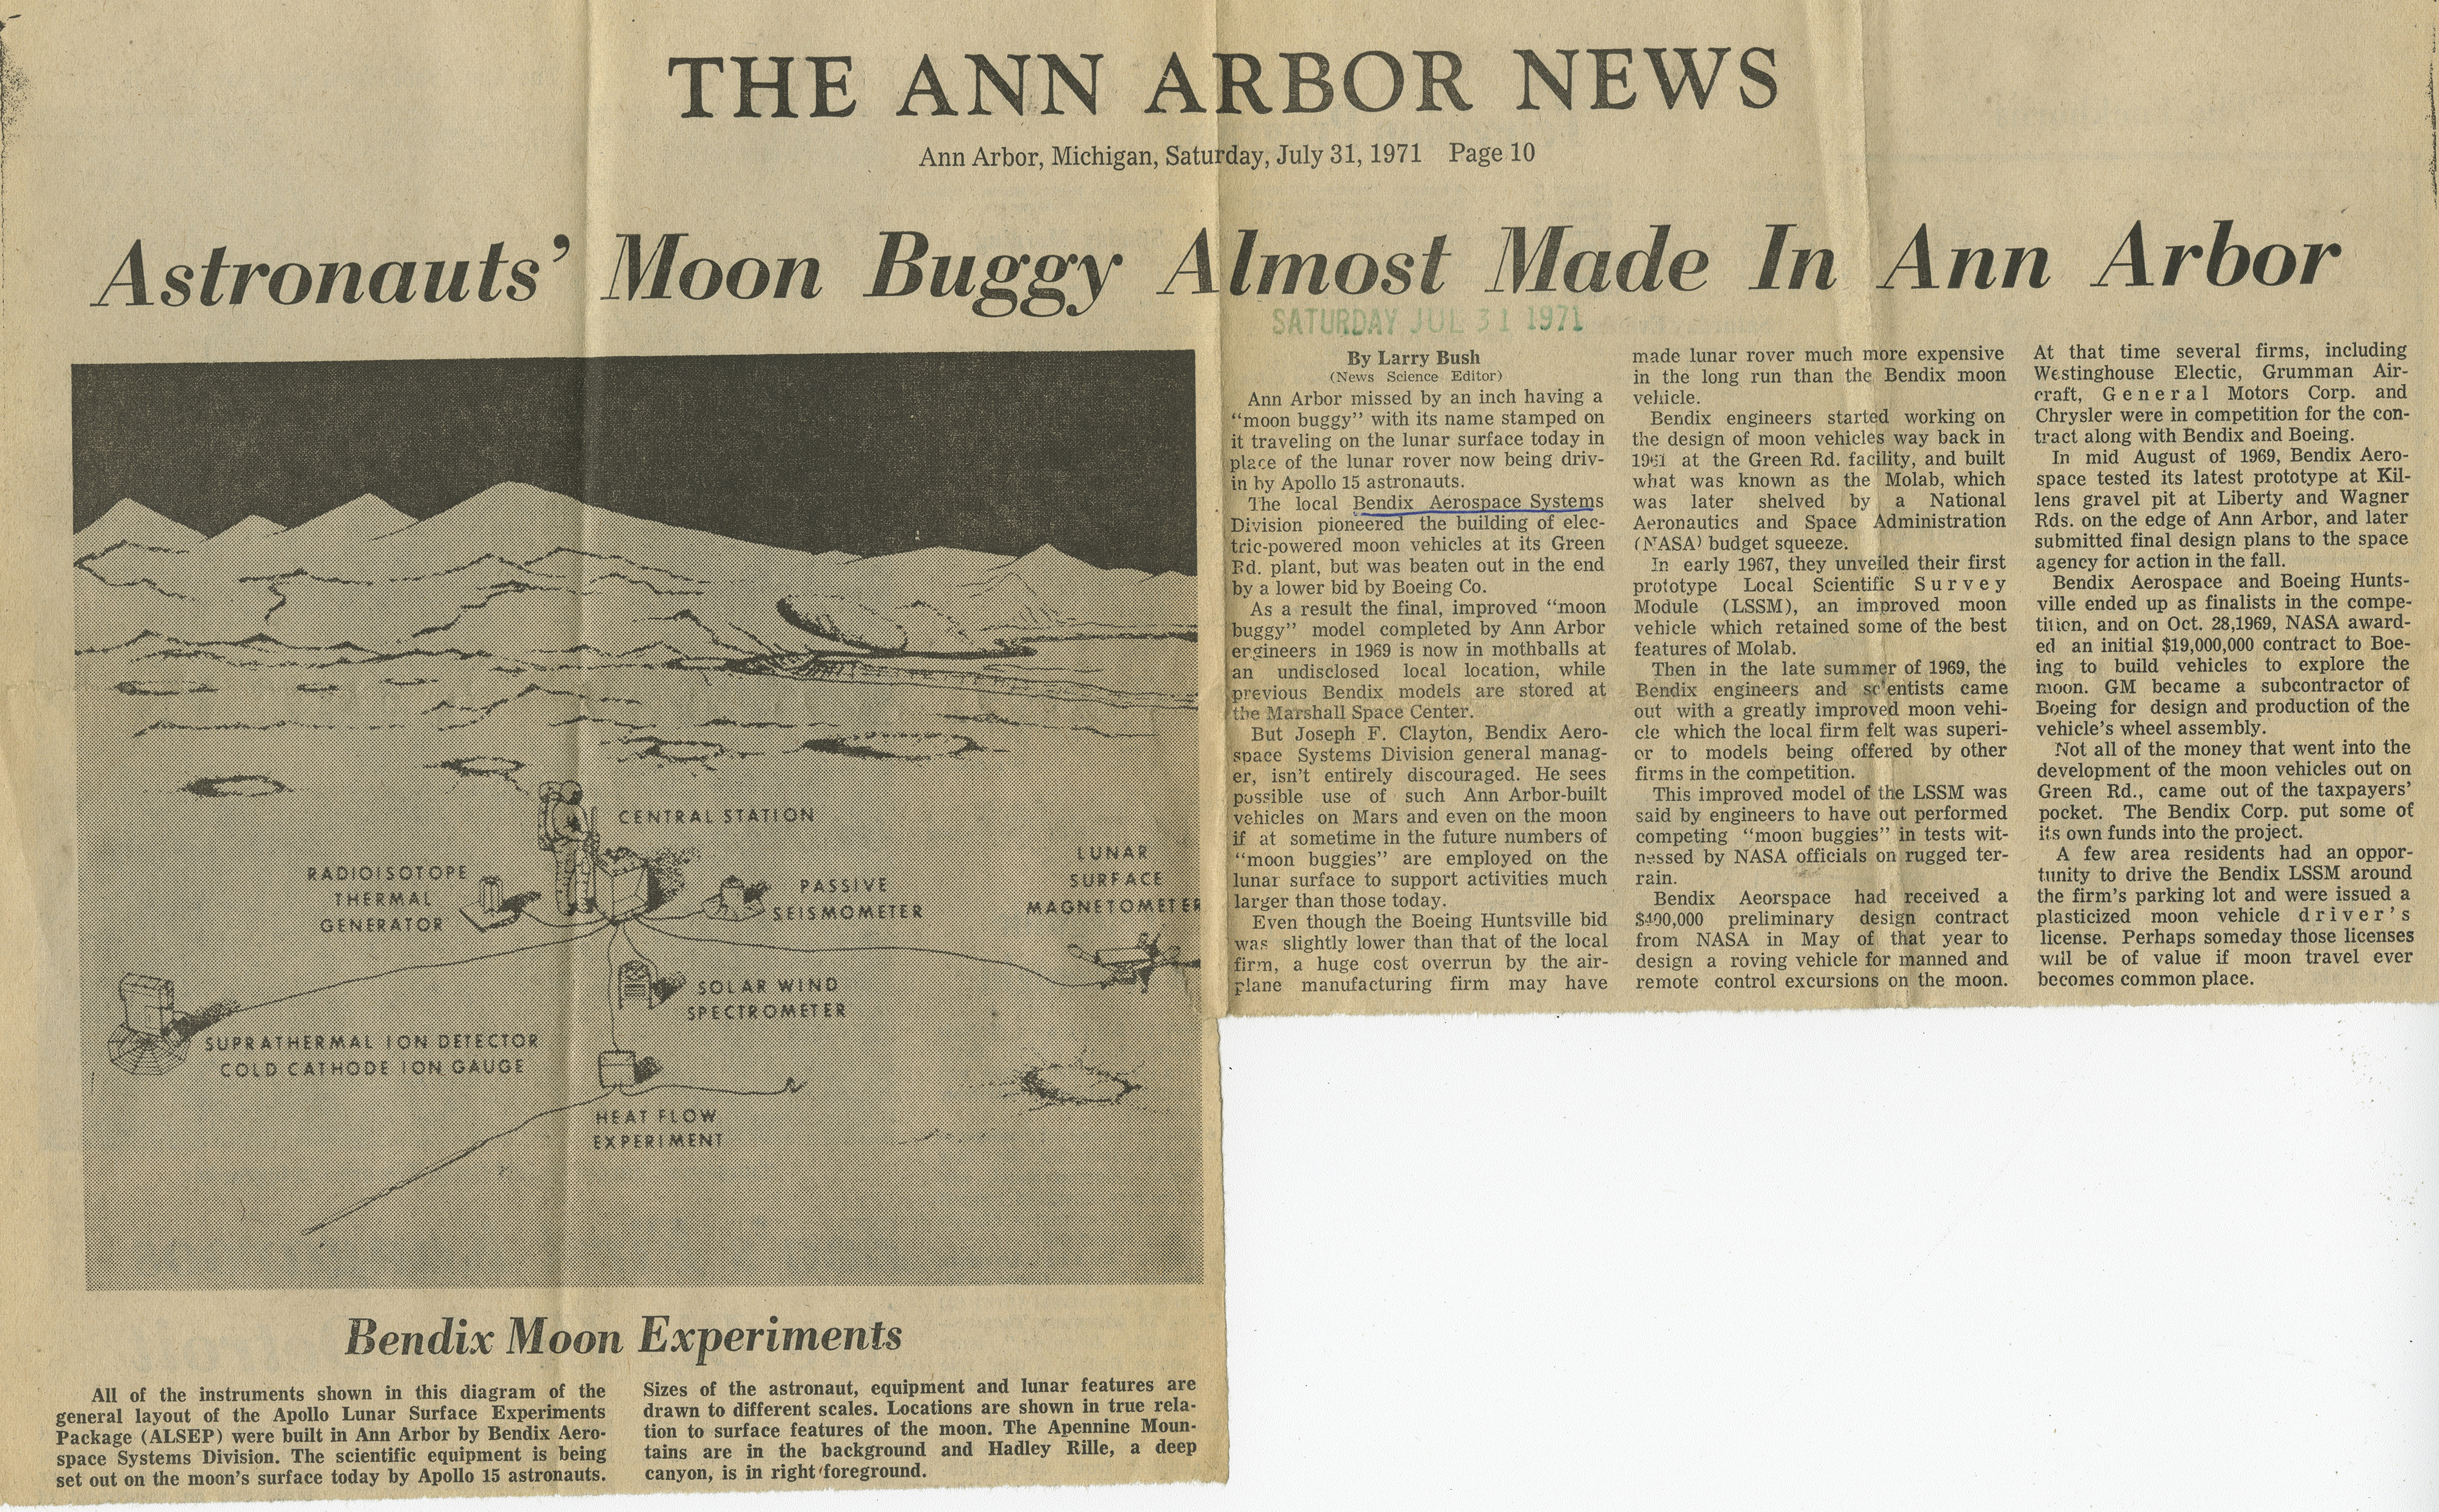 Astronauts' Moon Buggy Almost Made In Ann Arbor image